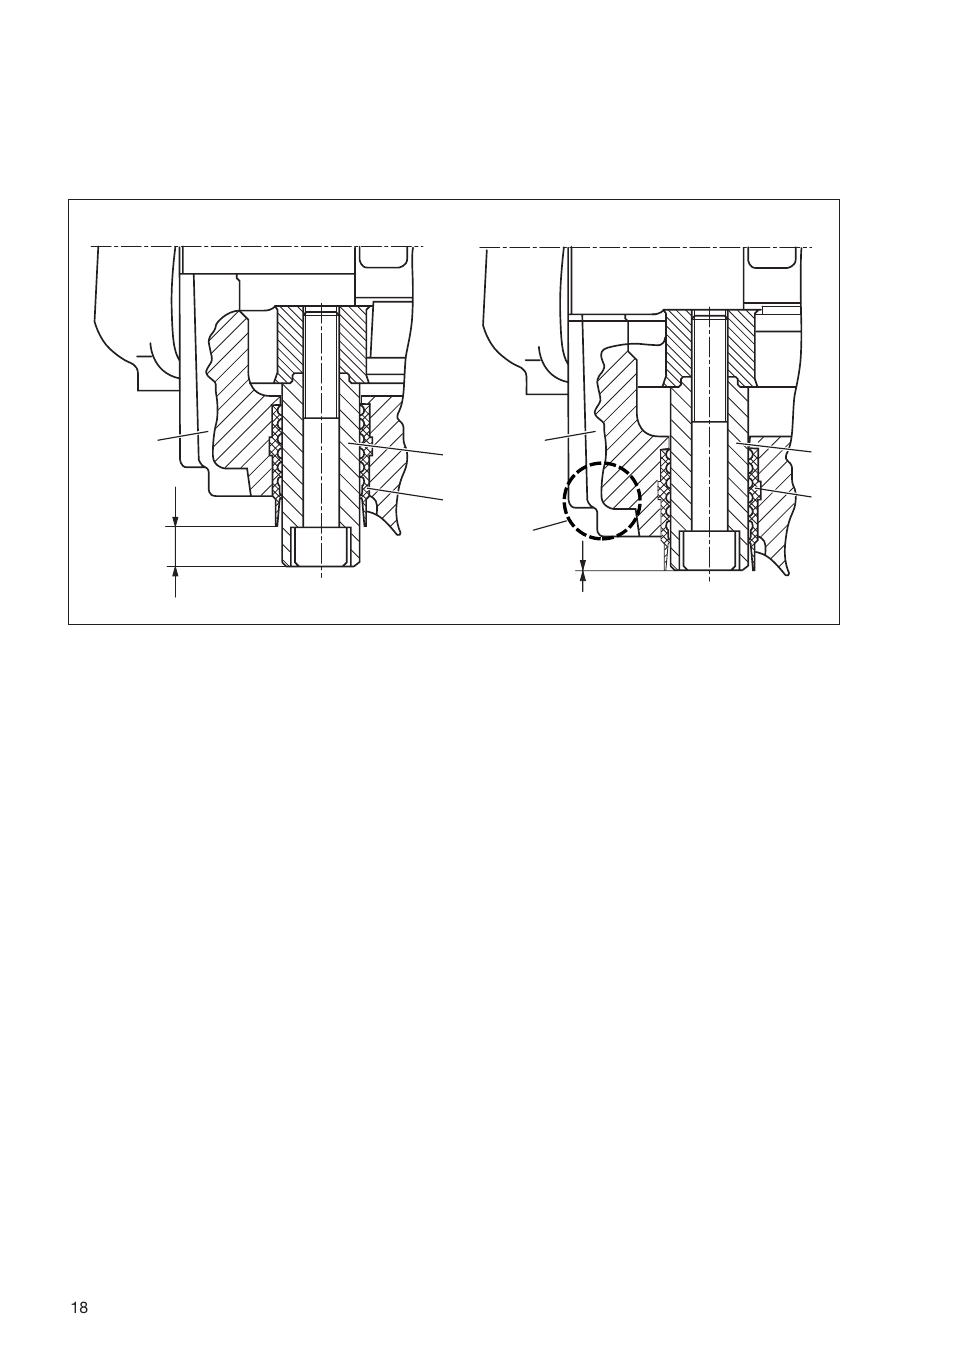 medium resolution of bendix commercial vehicle systems sb 7 air disc brake user manual page 18 36 also for sb 6 air disc brake